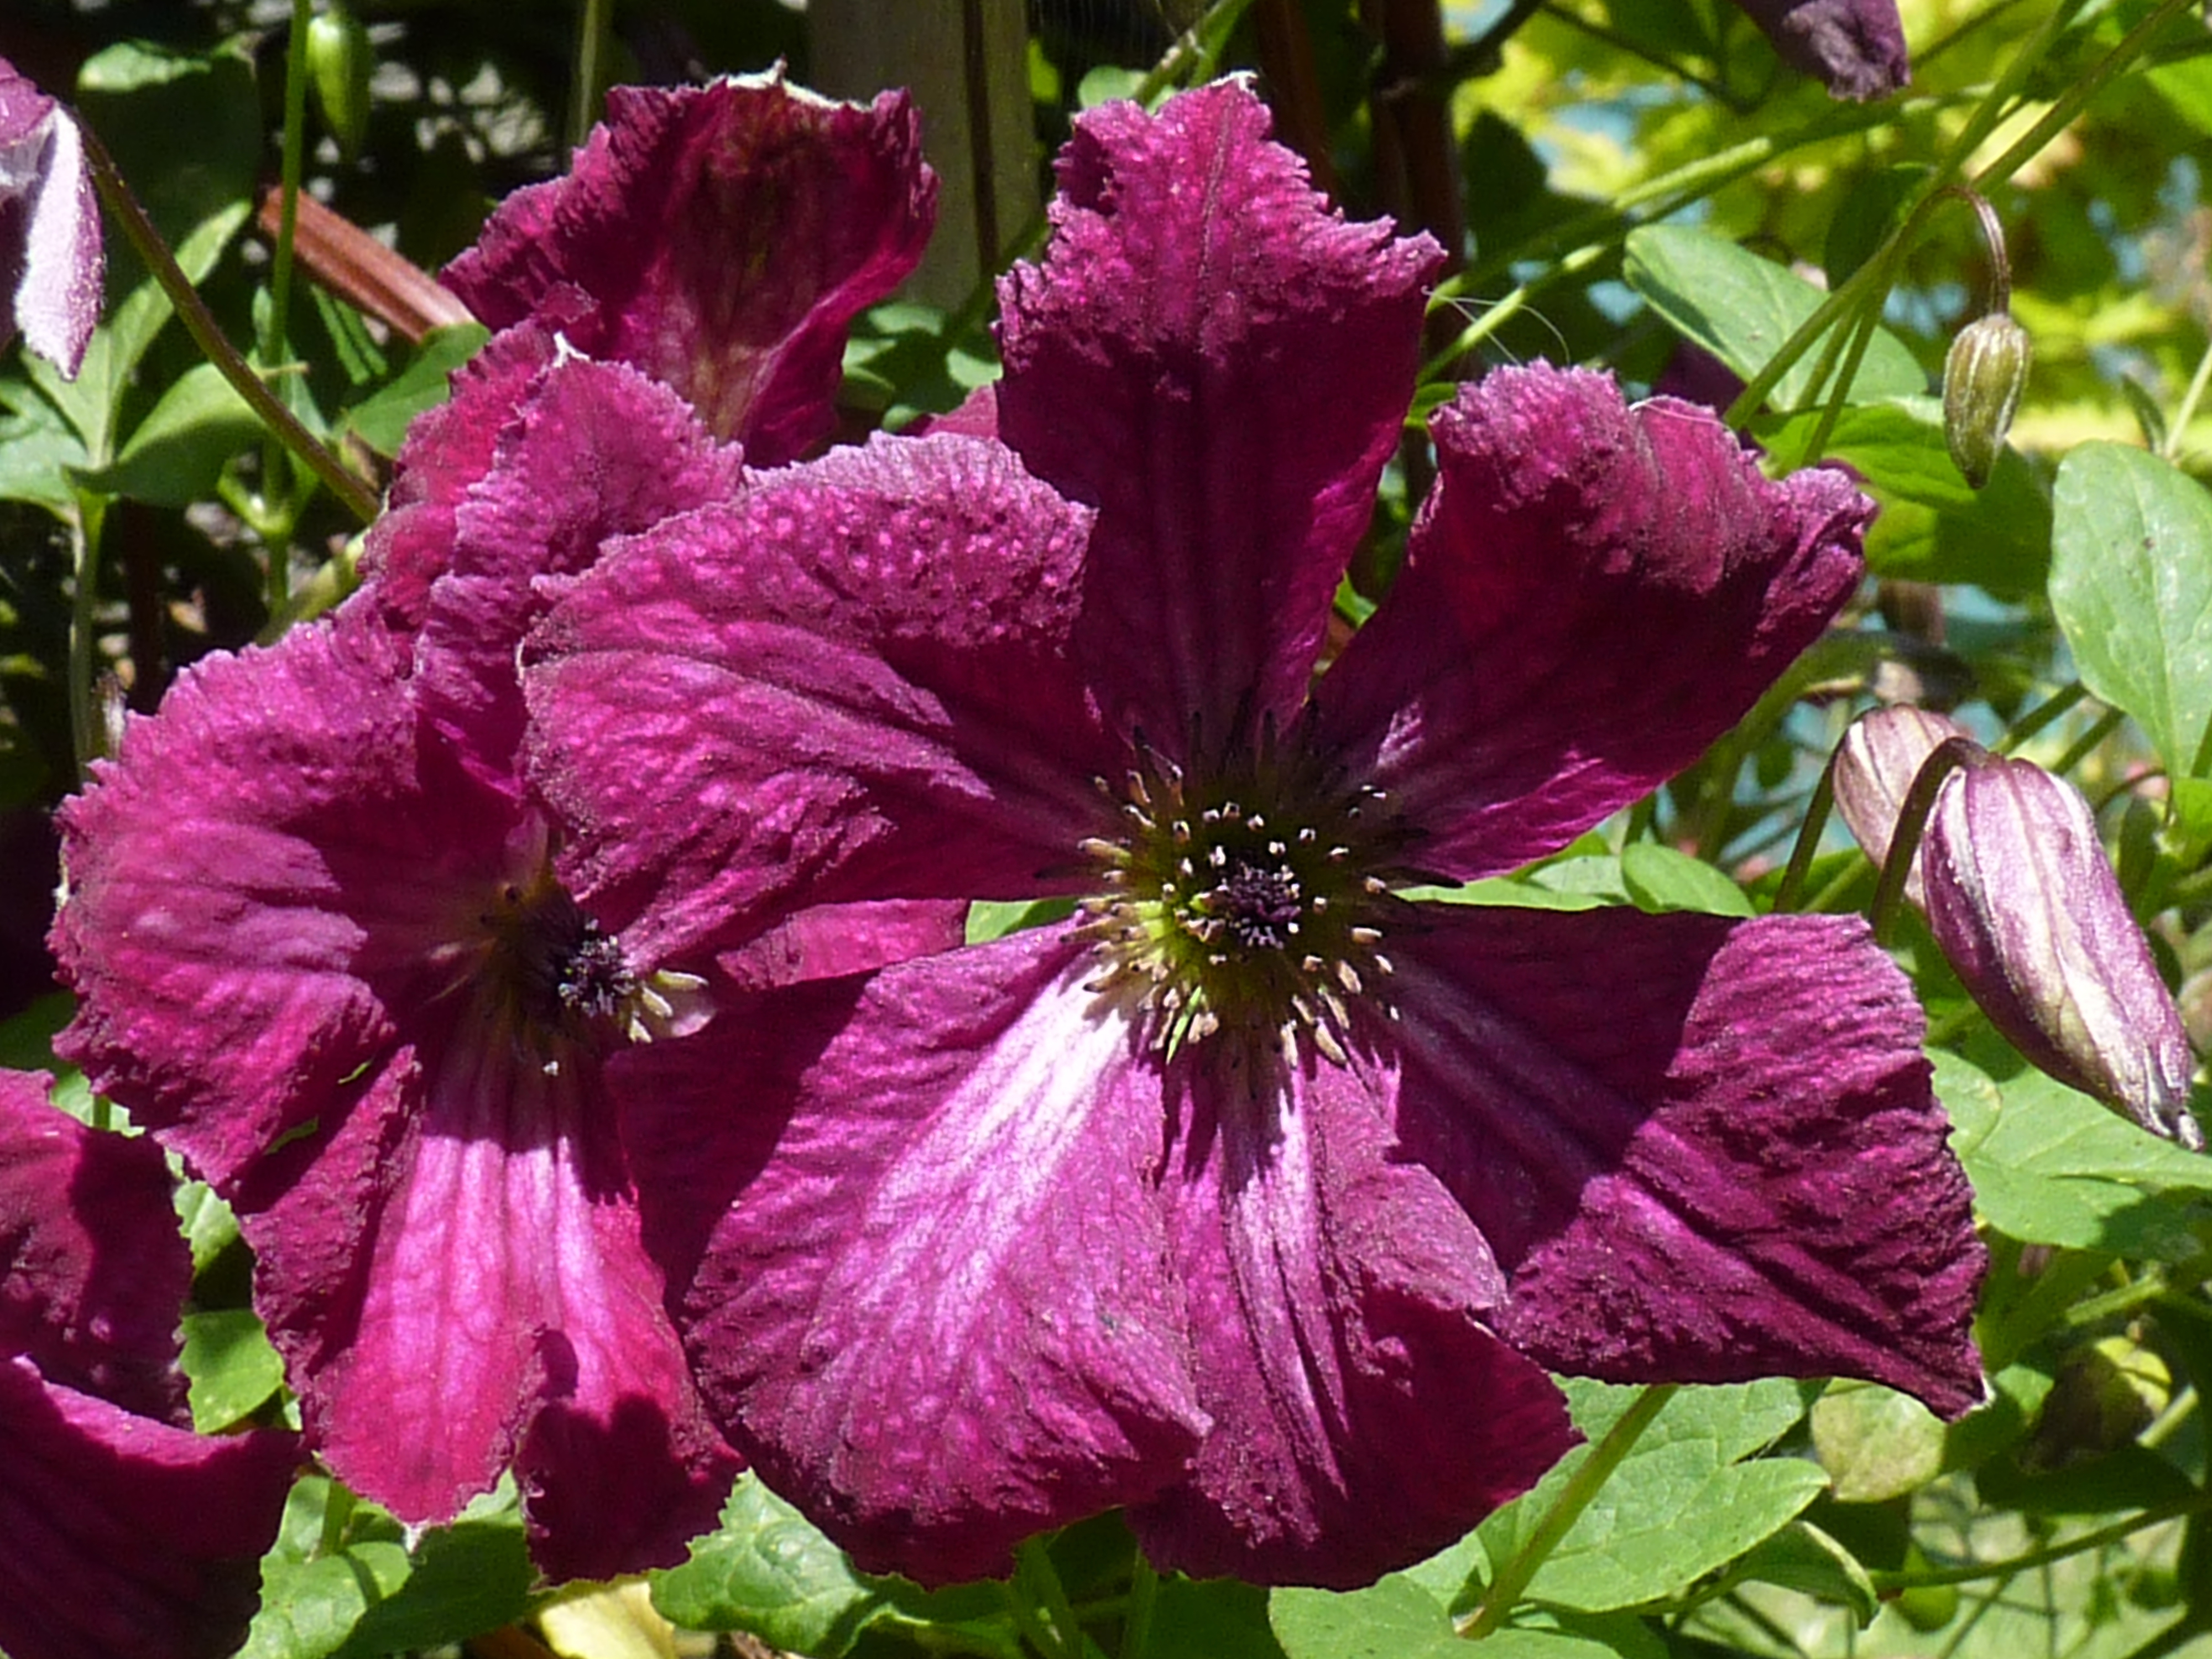 clematis viticella rubra photo from wikimedia commons